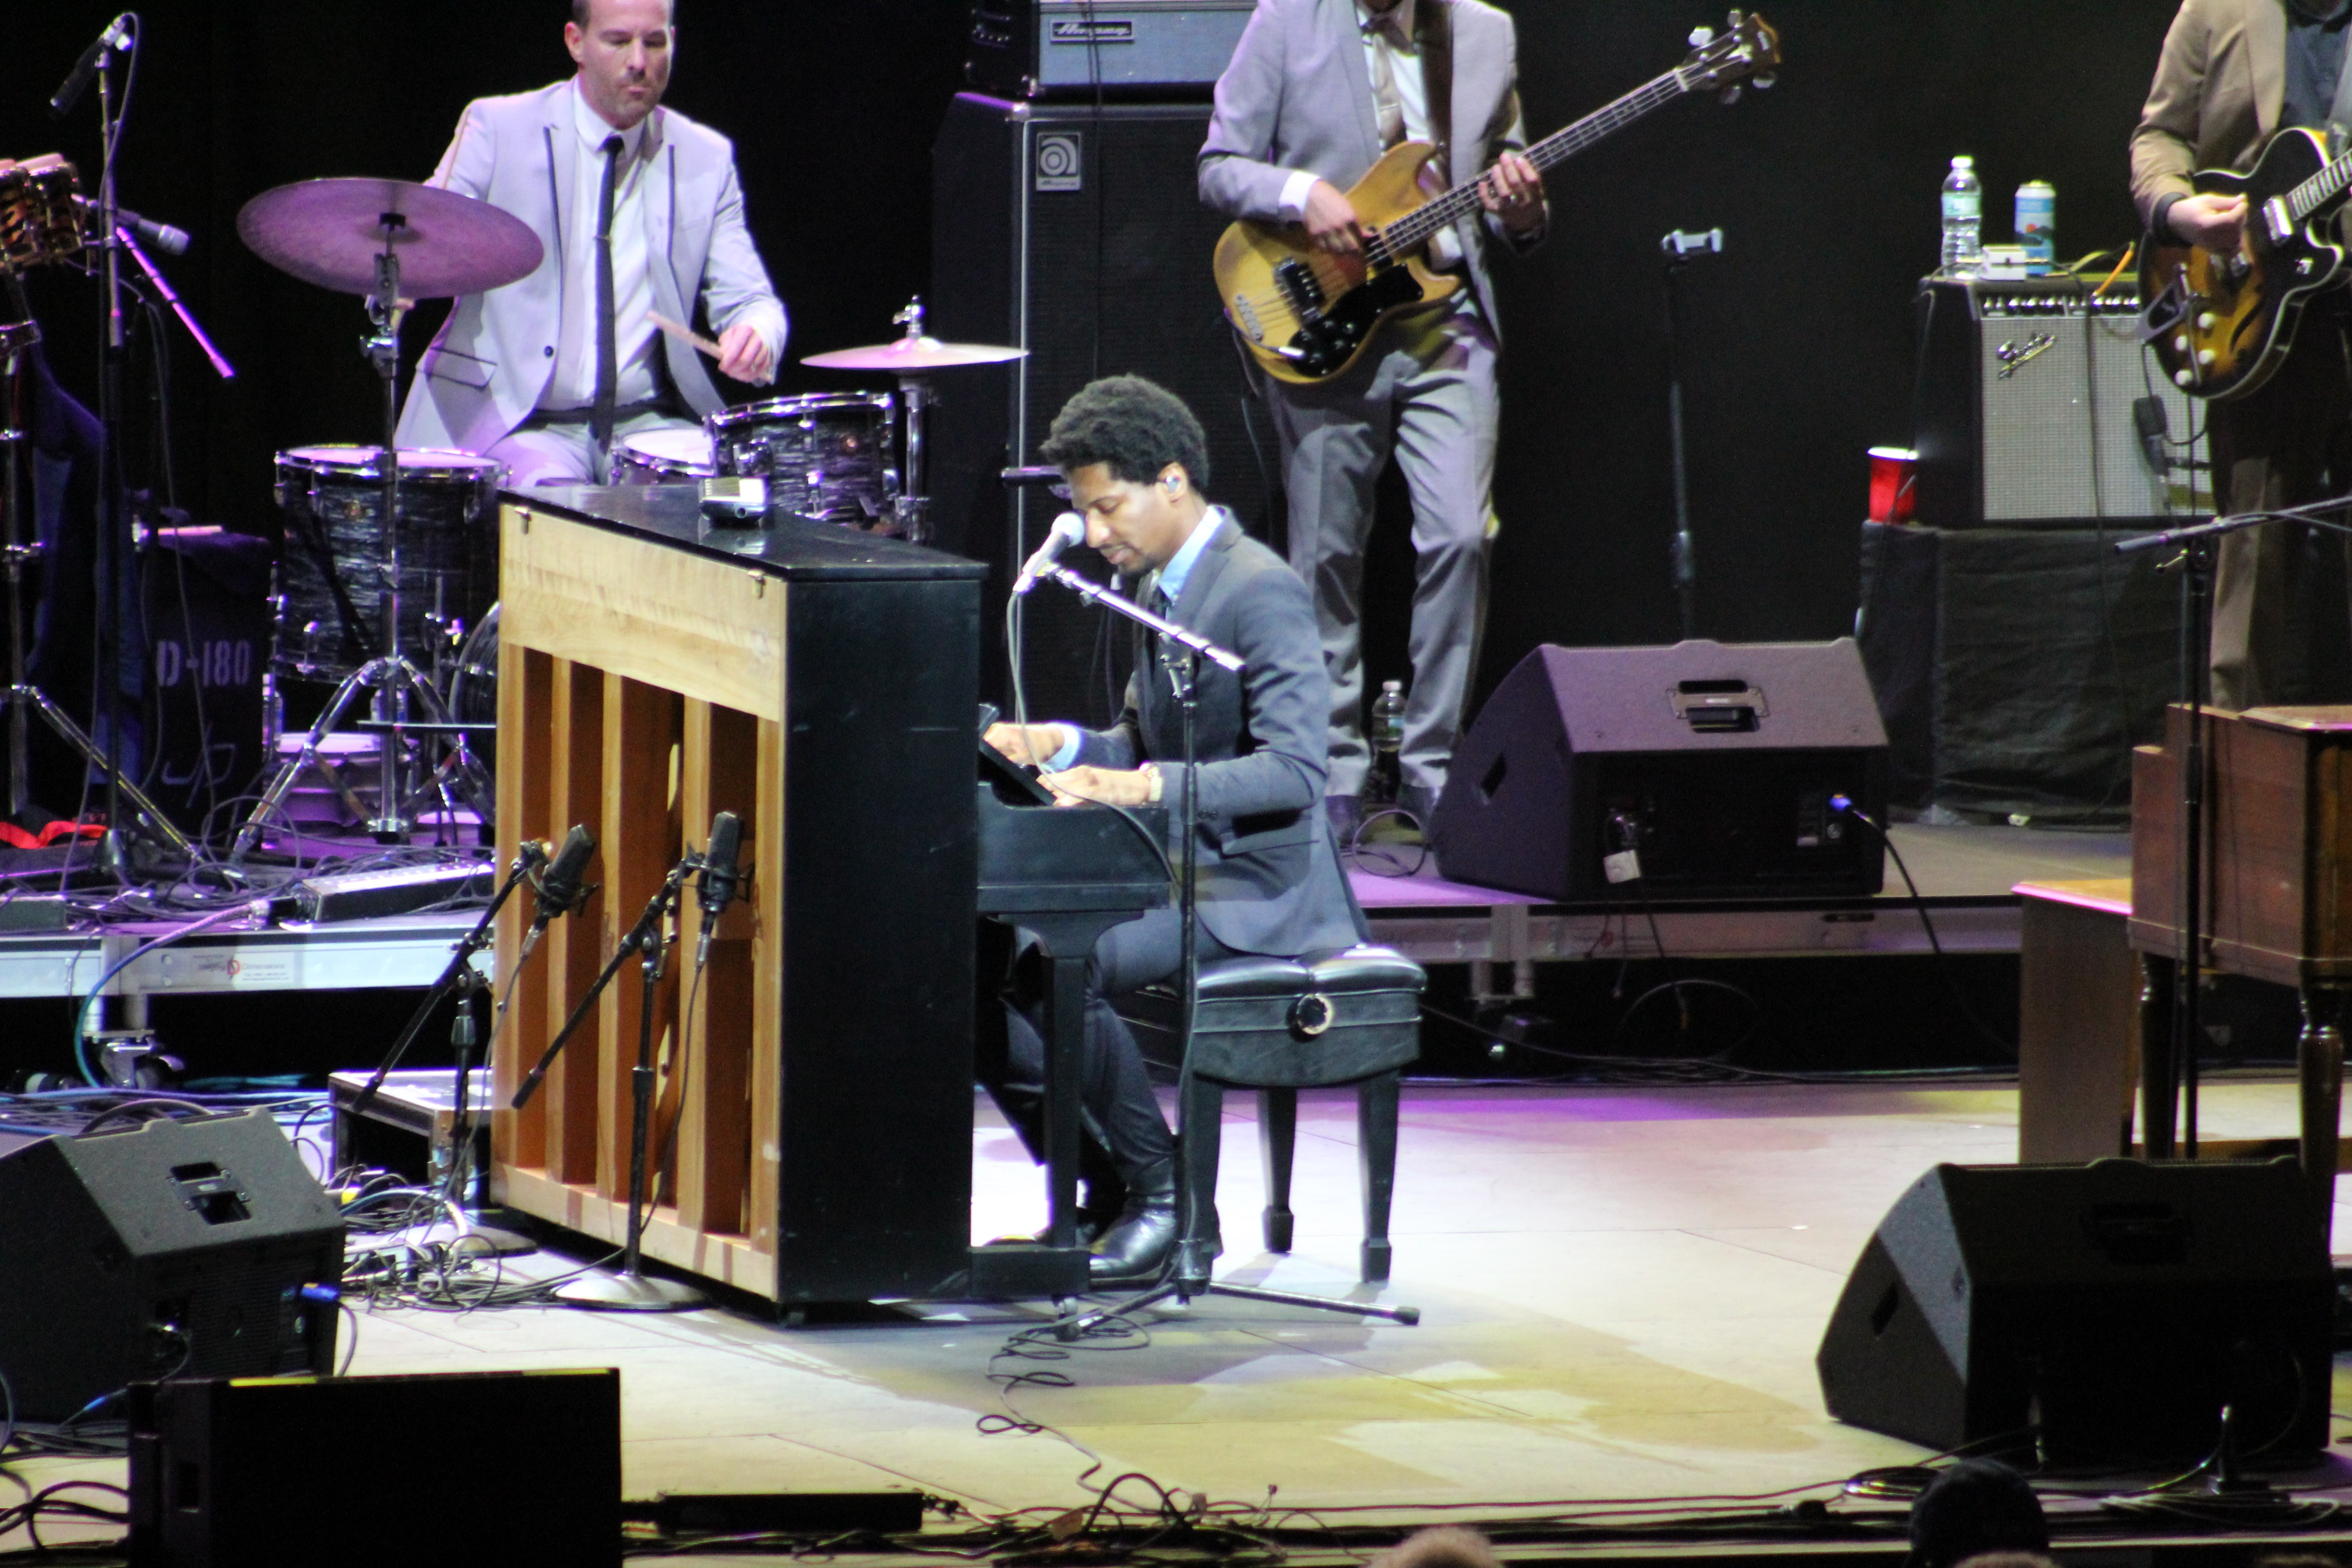 "<div class=""meta image-caption""><div class=""origin-logo origin-image wabc""><span>WABC</span></div><span class=""caption-text"">Jon Batiste with the Dap-Kings closed out the 2018 Freihofer's Saratoga Jazz Festival on the Amphitheatre Main Stage Sunday Night. (Calvin B. De Mond)</span></div>"